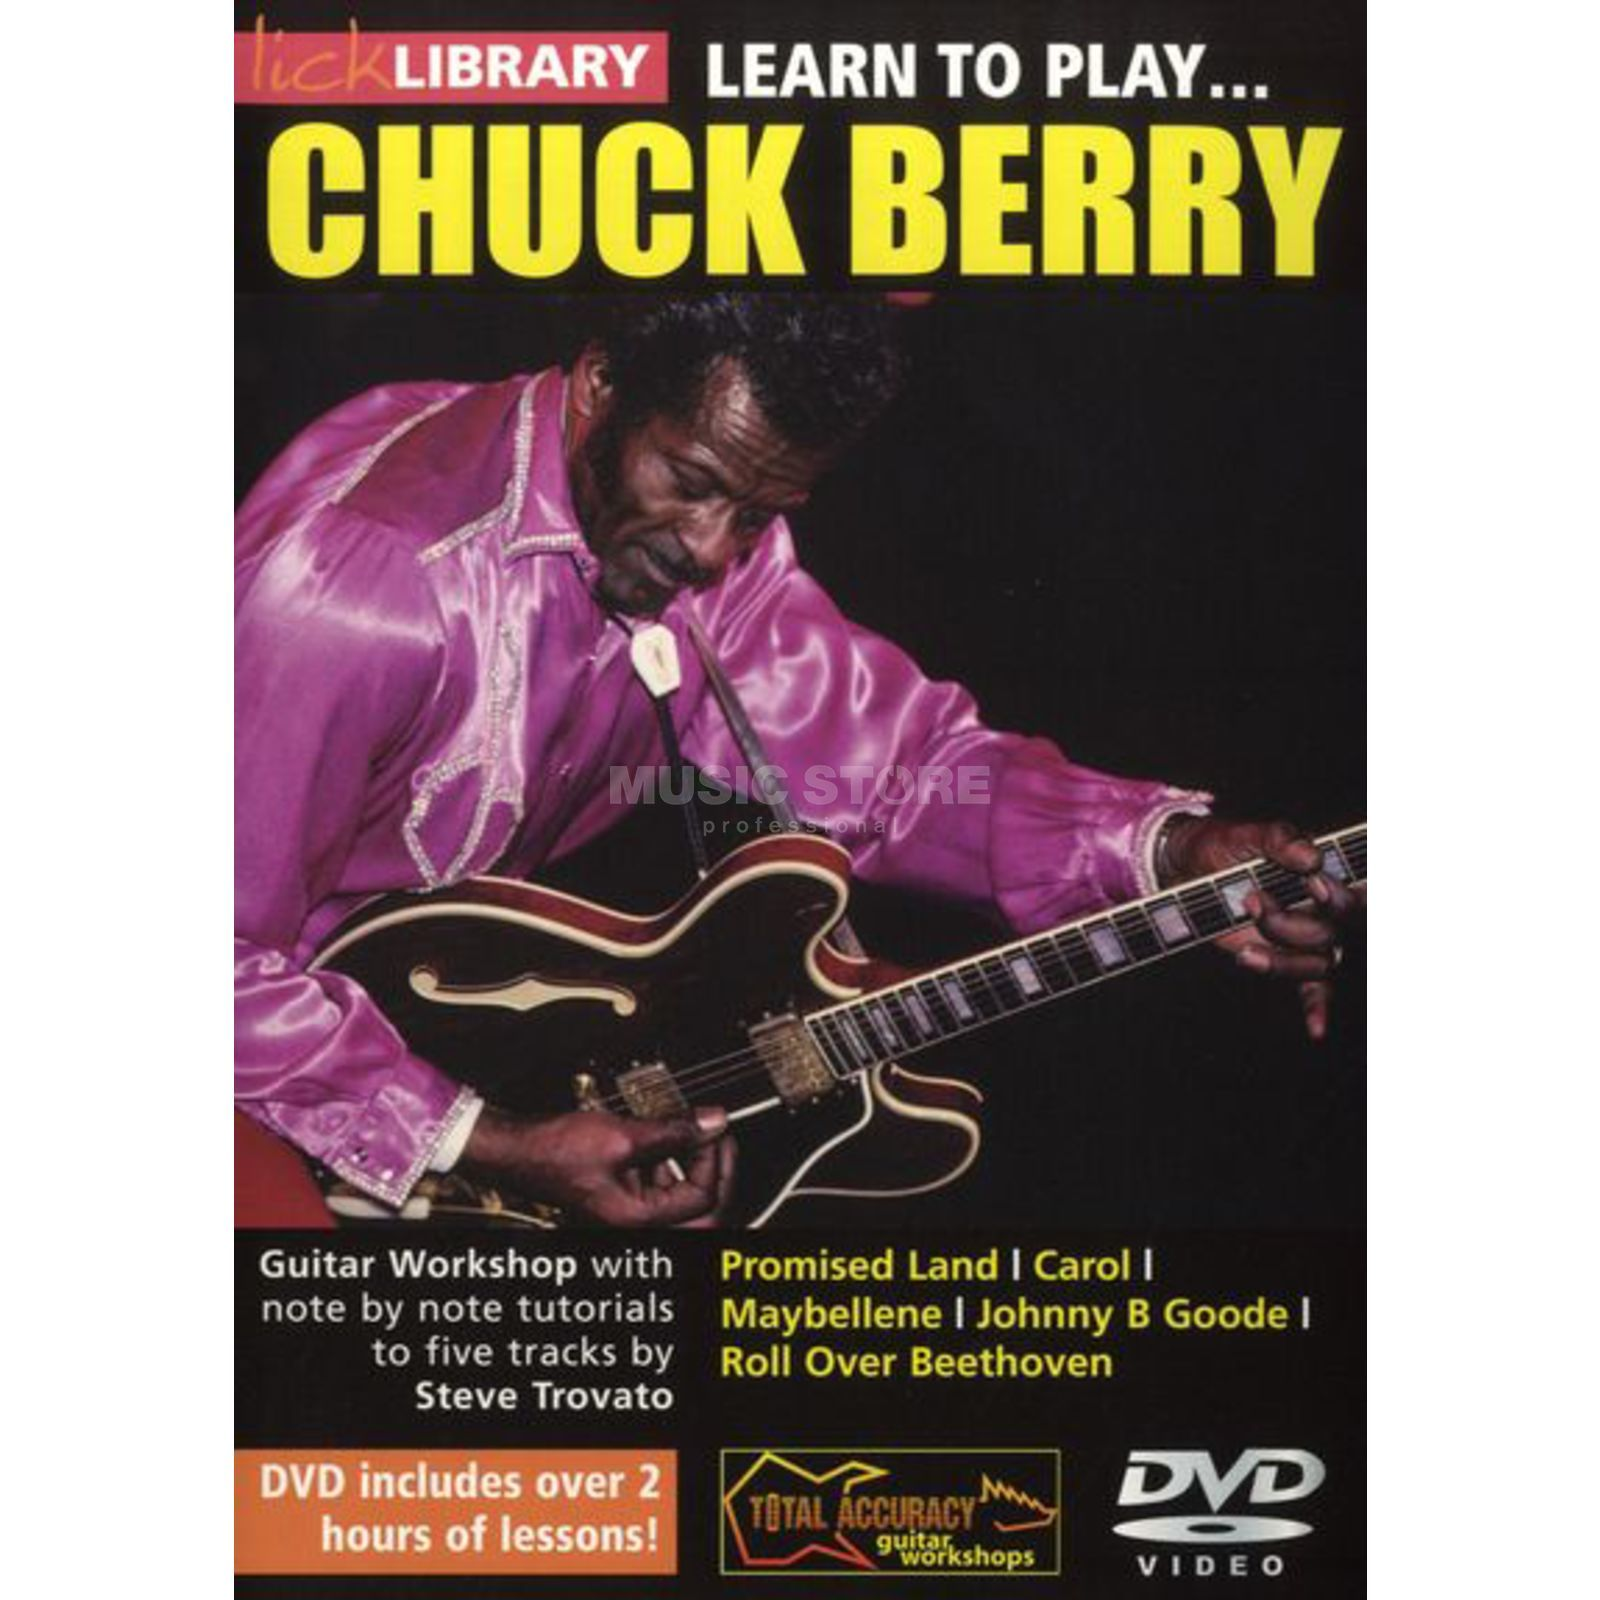 Roadrock International Lick Library: Learn To Play Chuck Berry DVD Produktbild